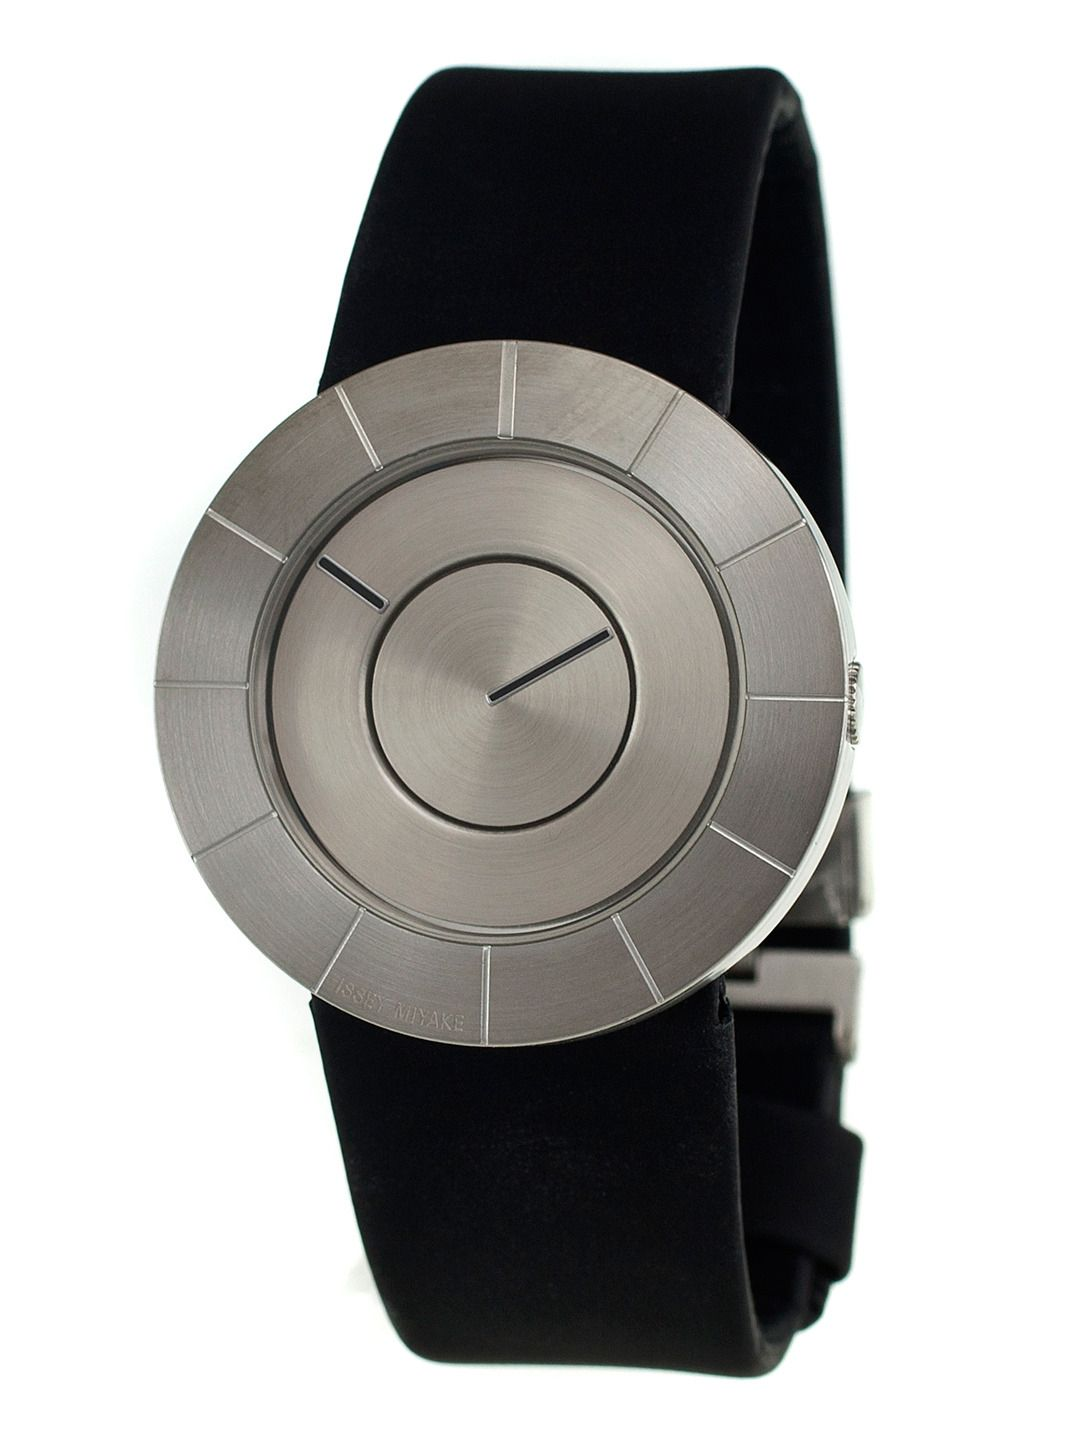 TO Watch by Issey Miyake at Gilt